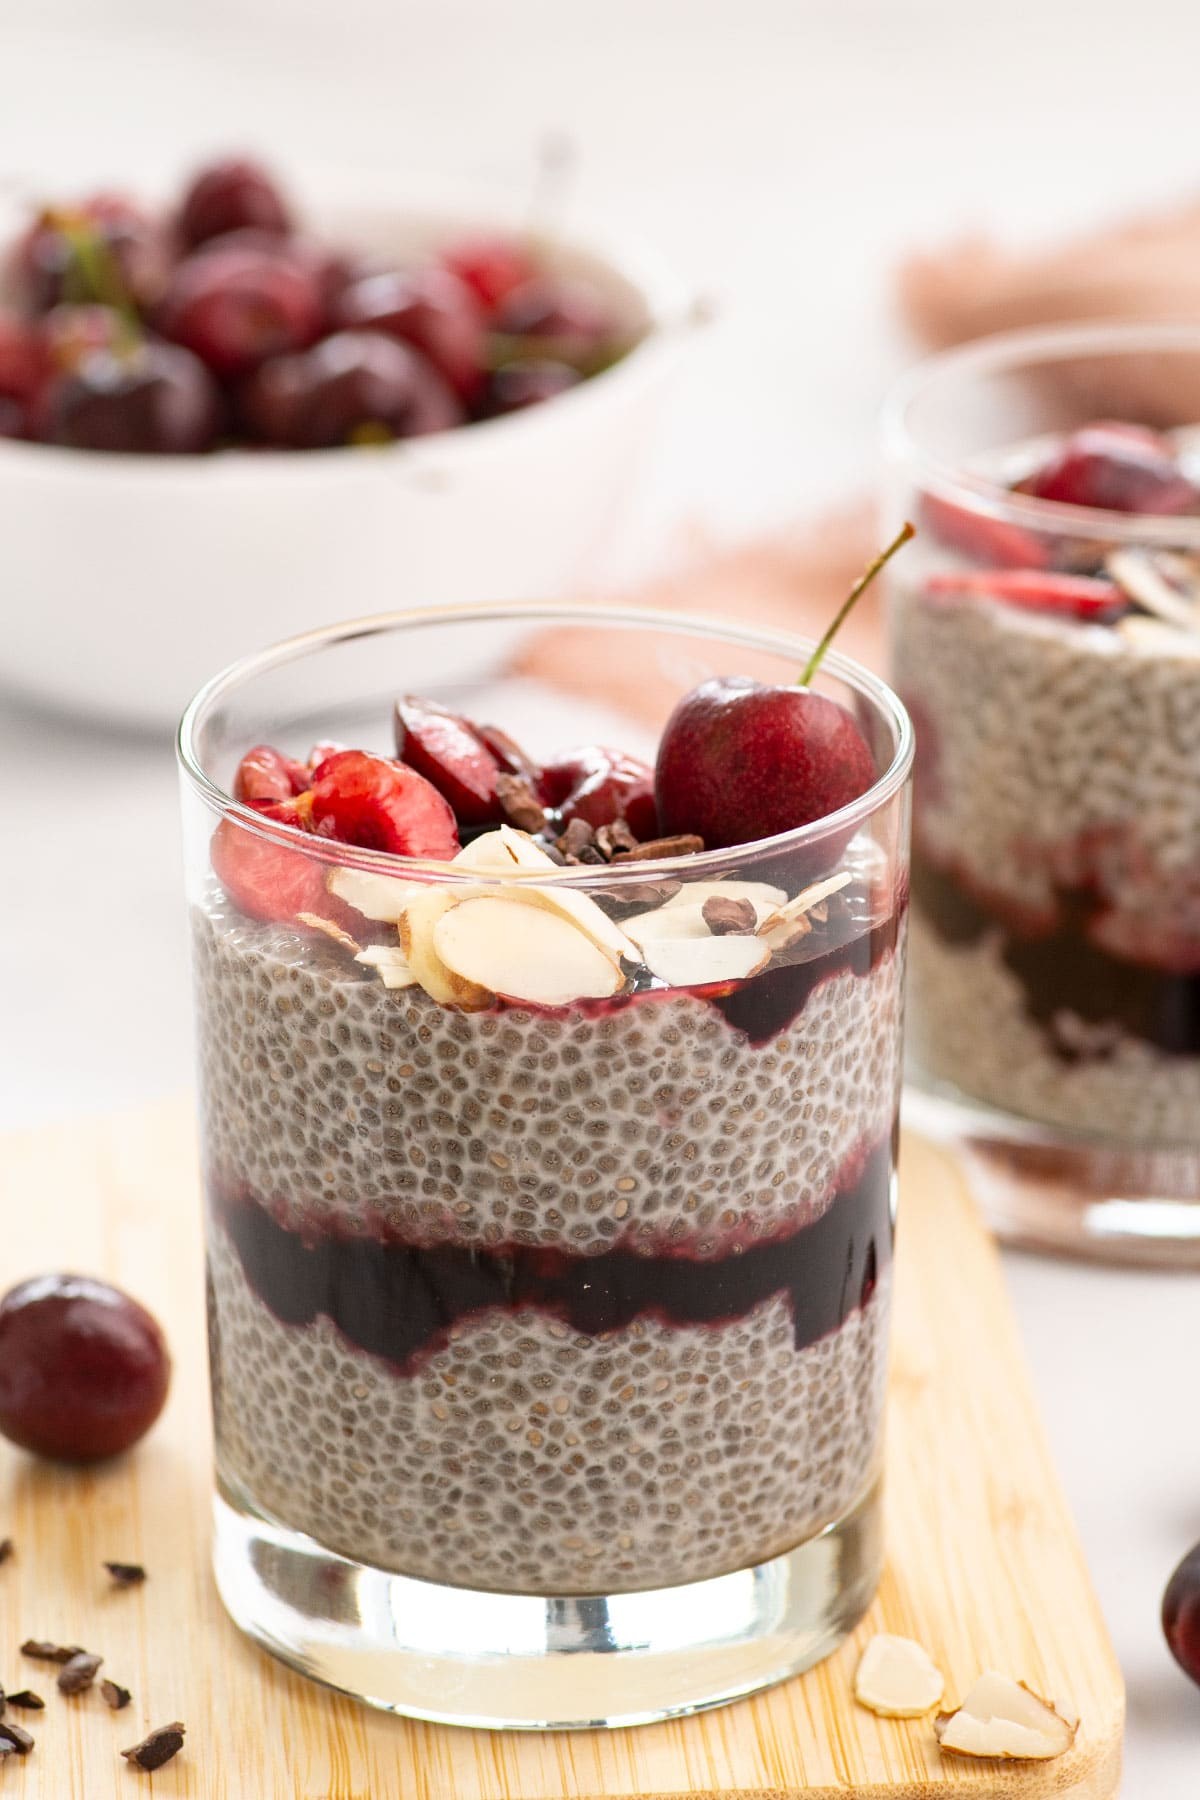 close view of layers of chia seed pudding and cherry compote with chocolate sauce and sliced almonds